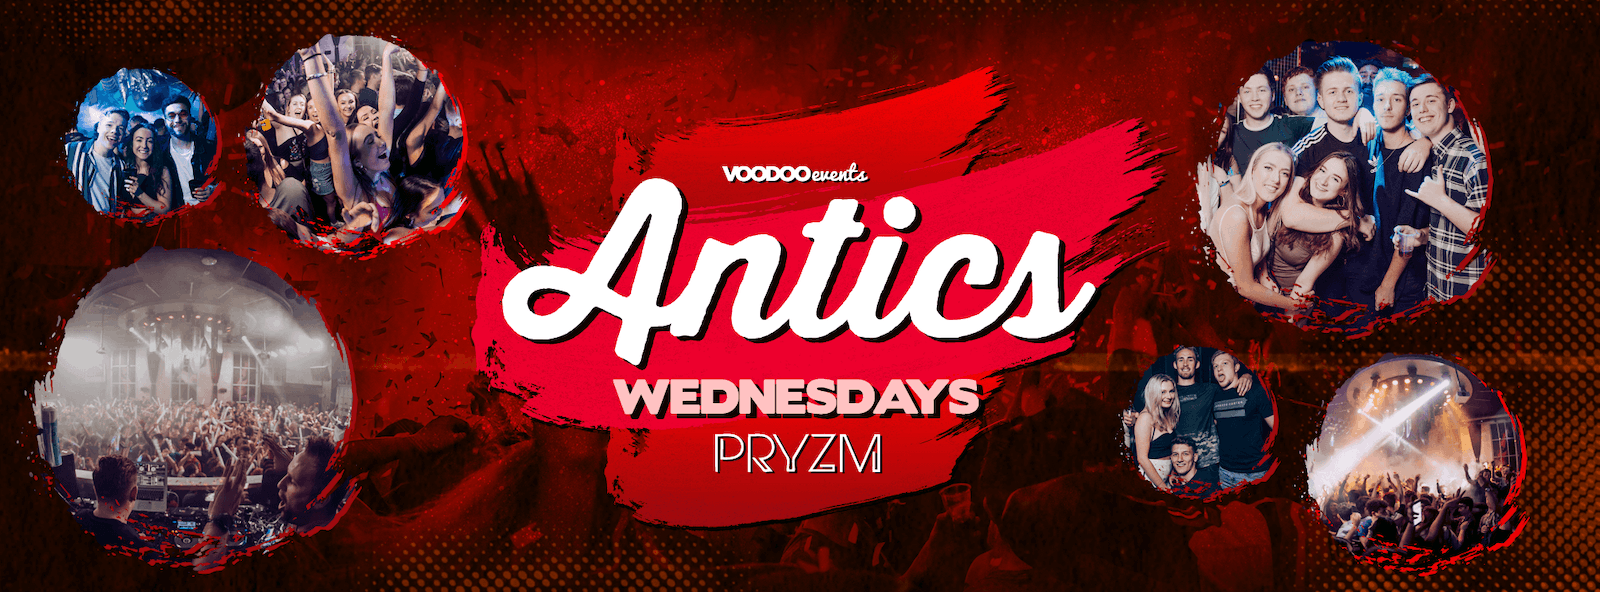 Antics Leeds at Pryzm